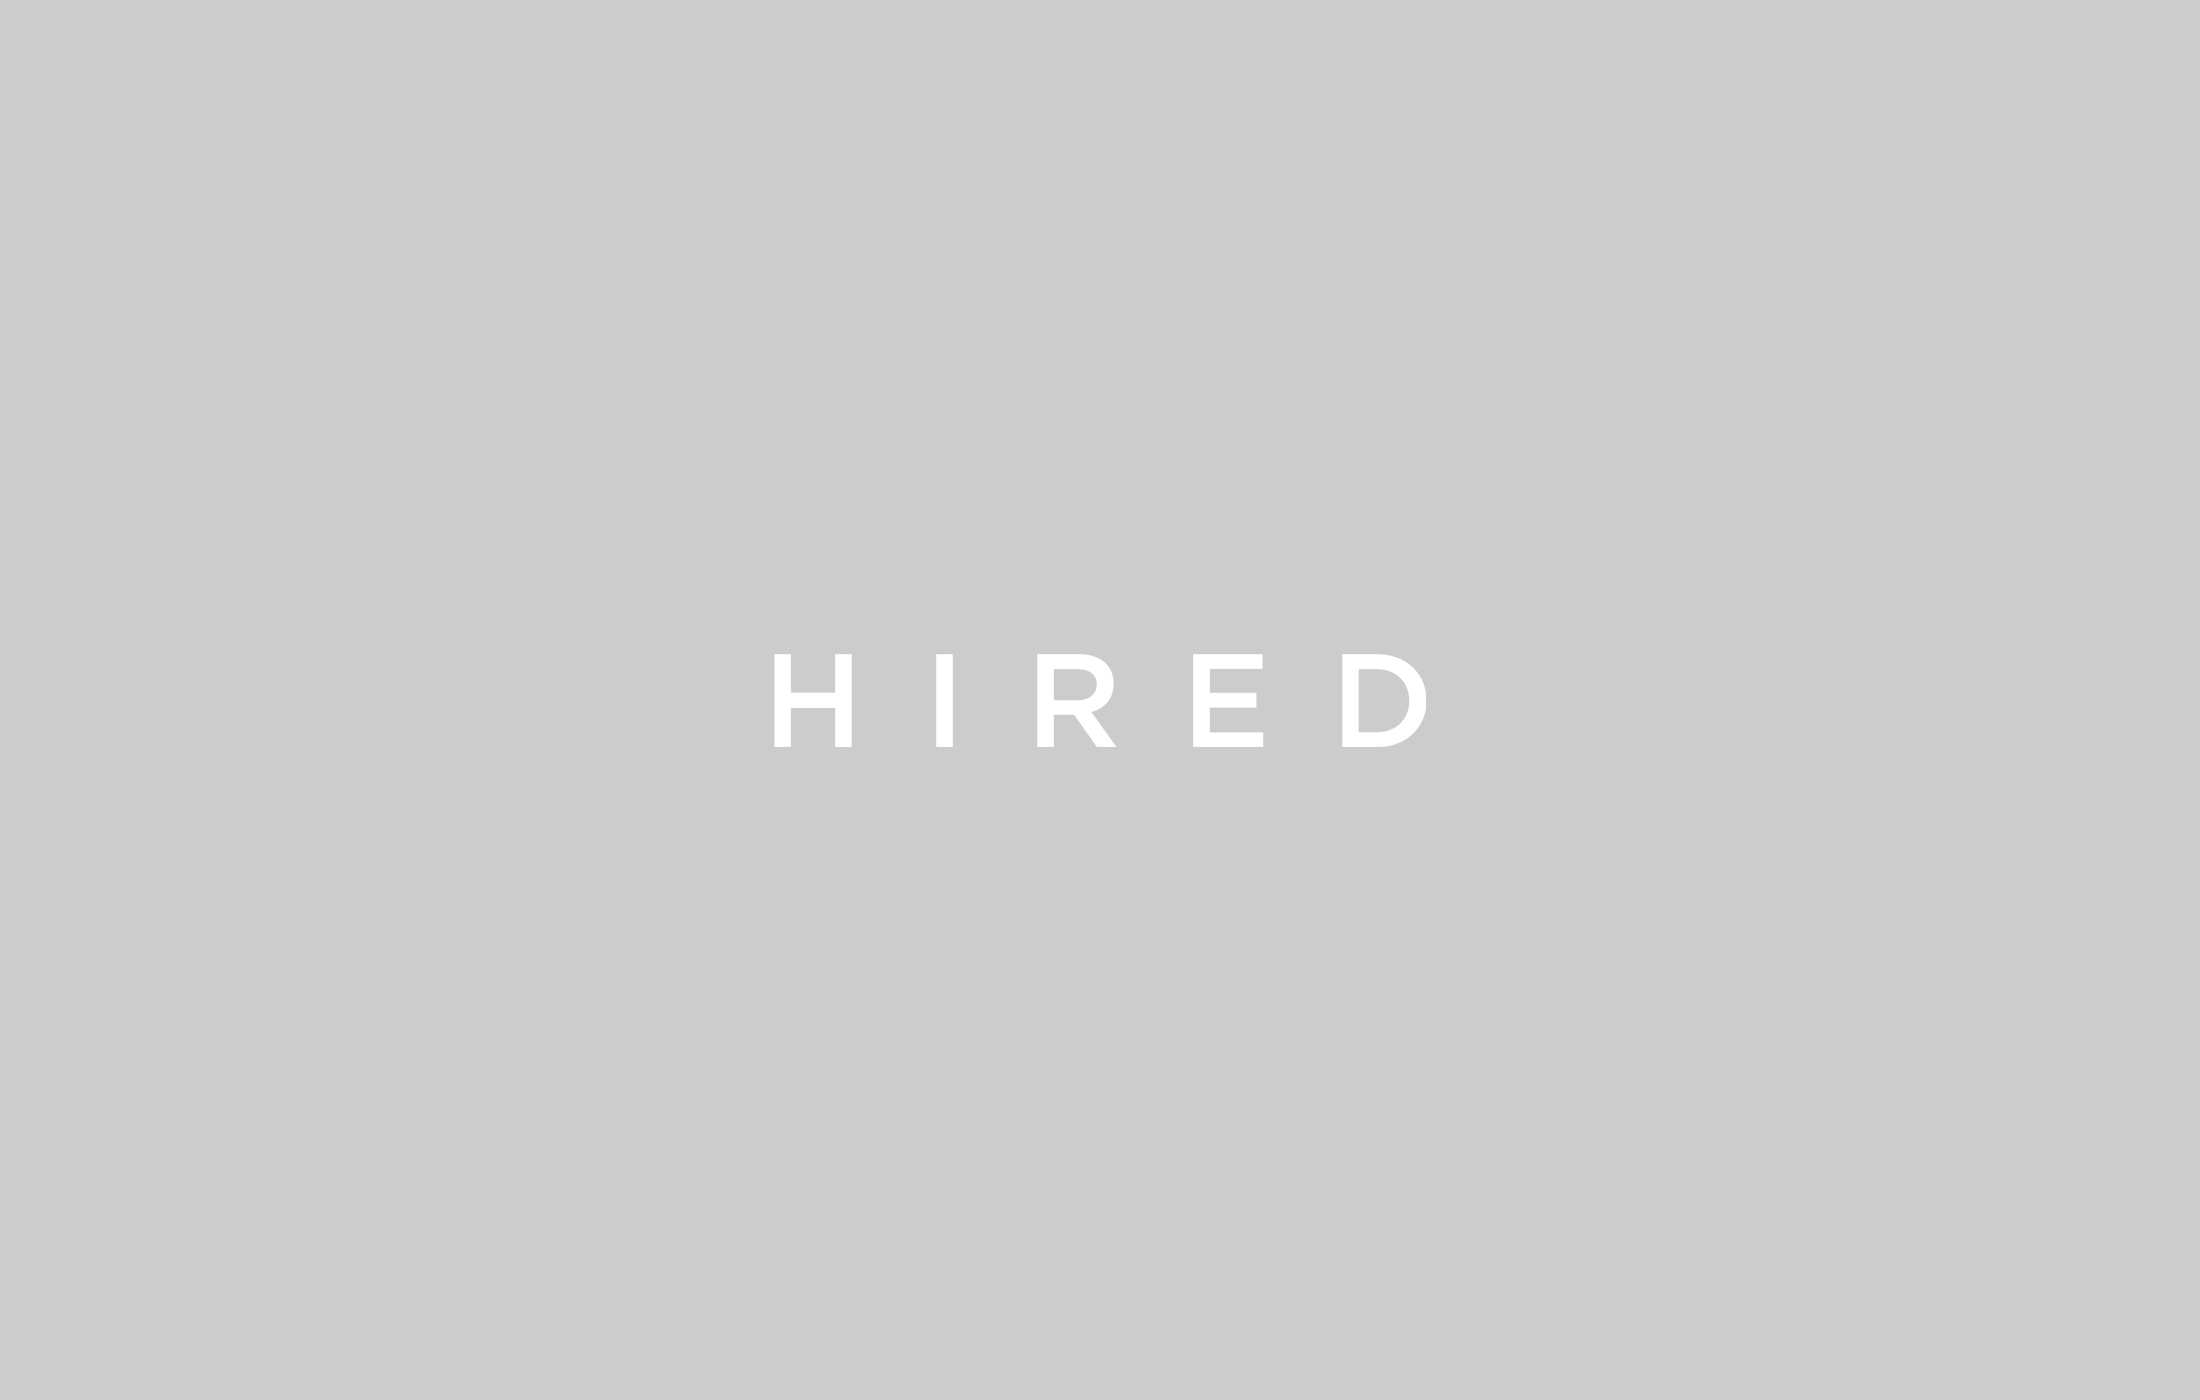 office-hours-get-free-confidential-career-advice-from-the-hired-nyc-team